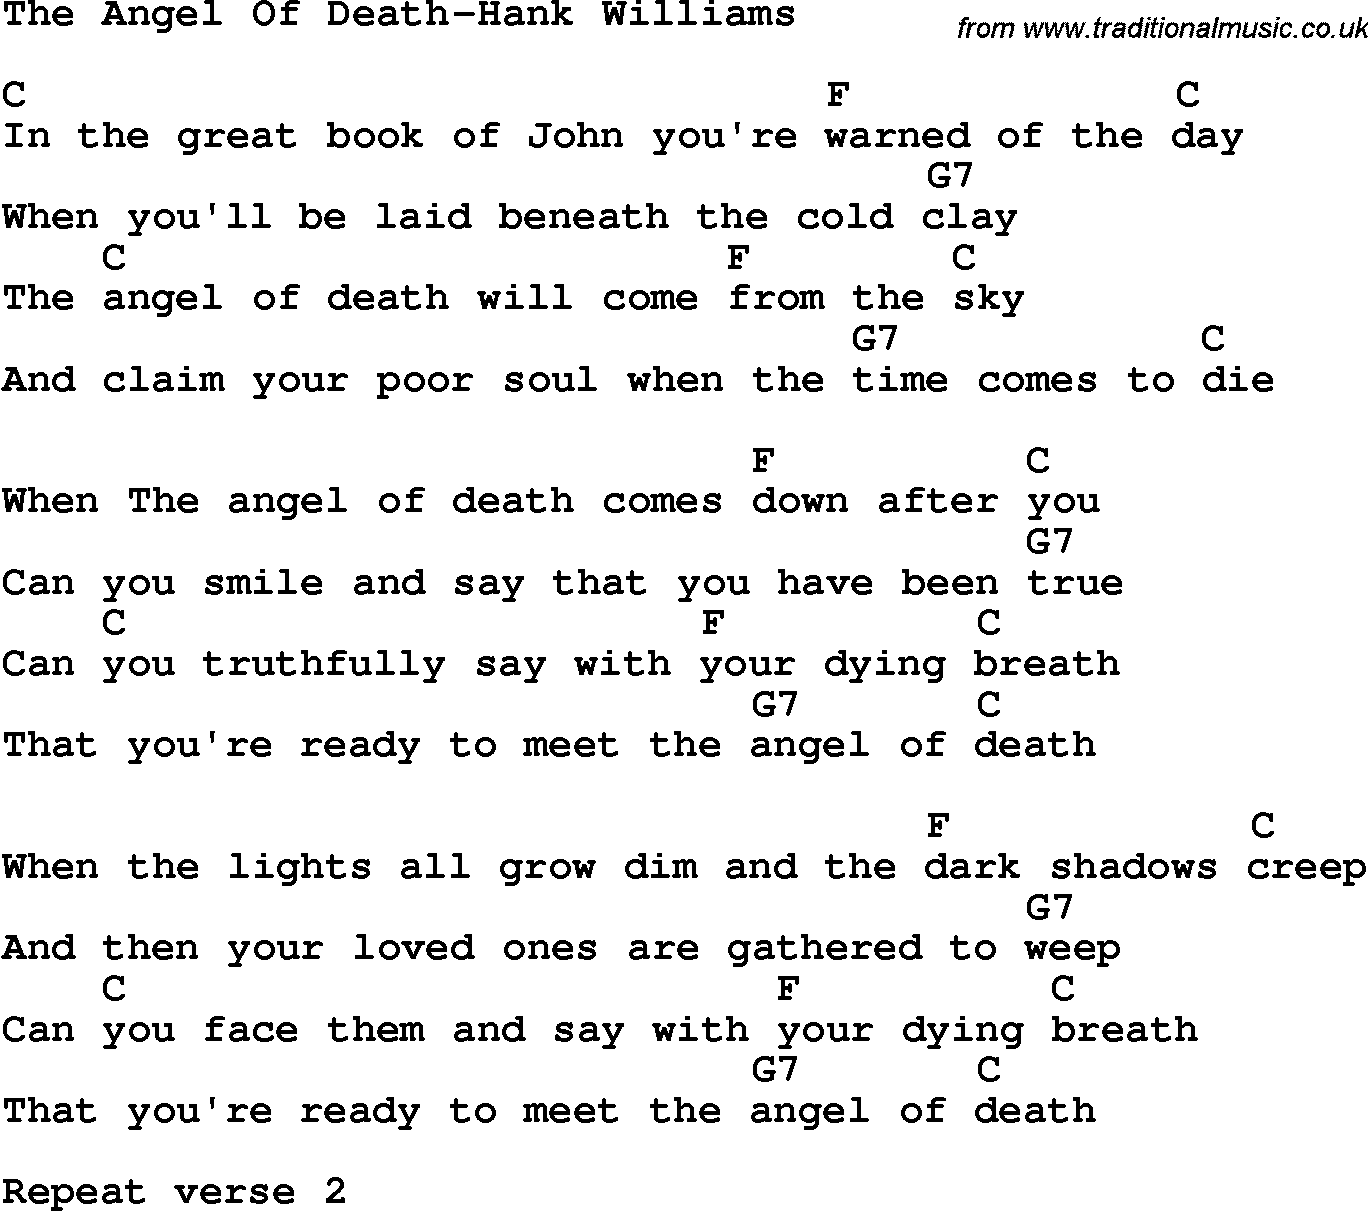 Country, Southern and Bluegrass Gospel Song The Angel Of Death-Hank